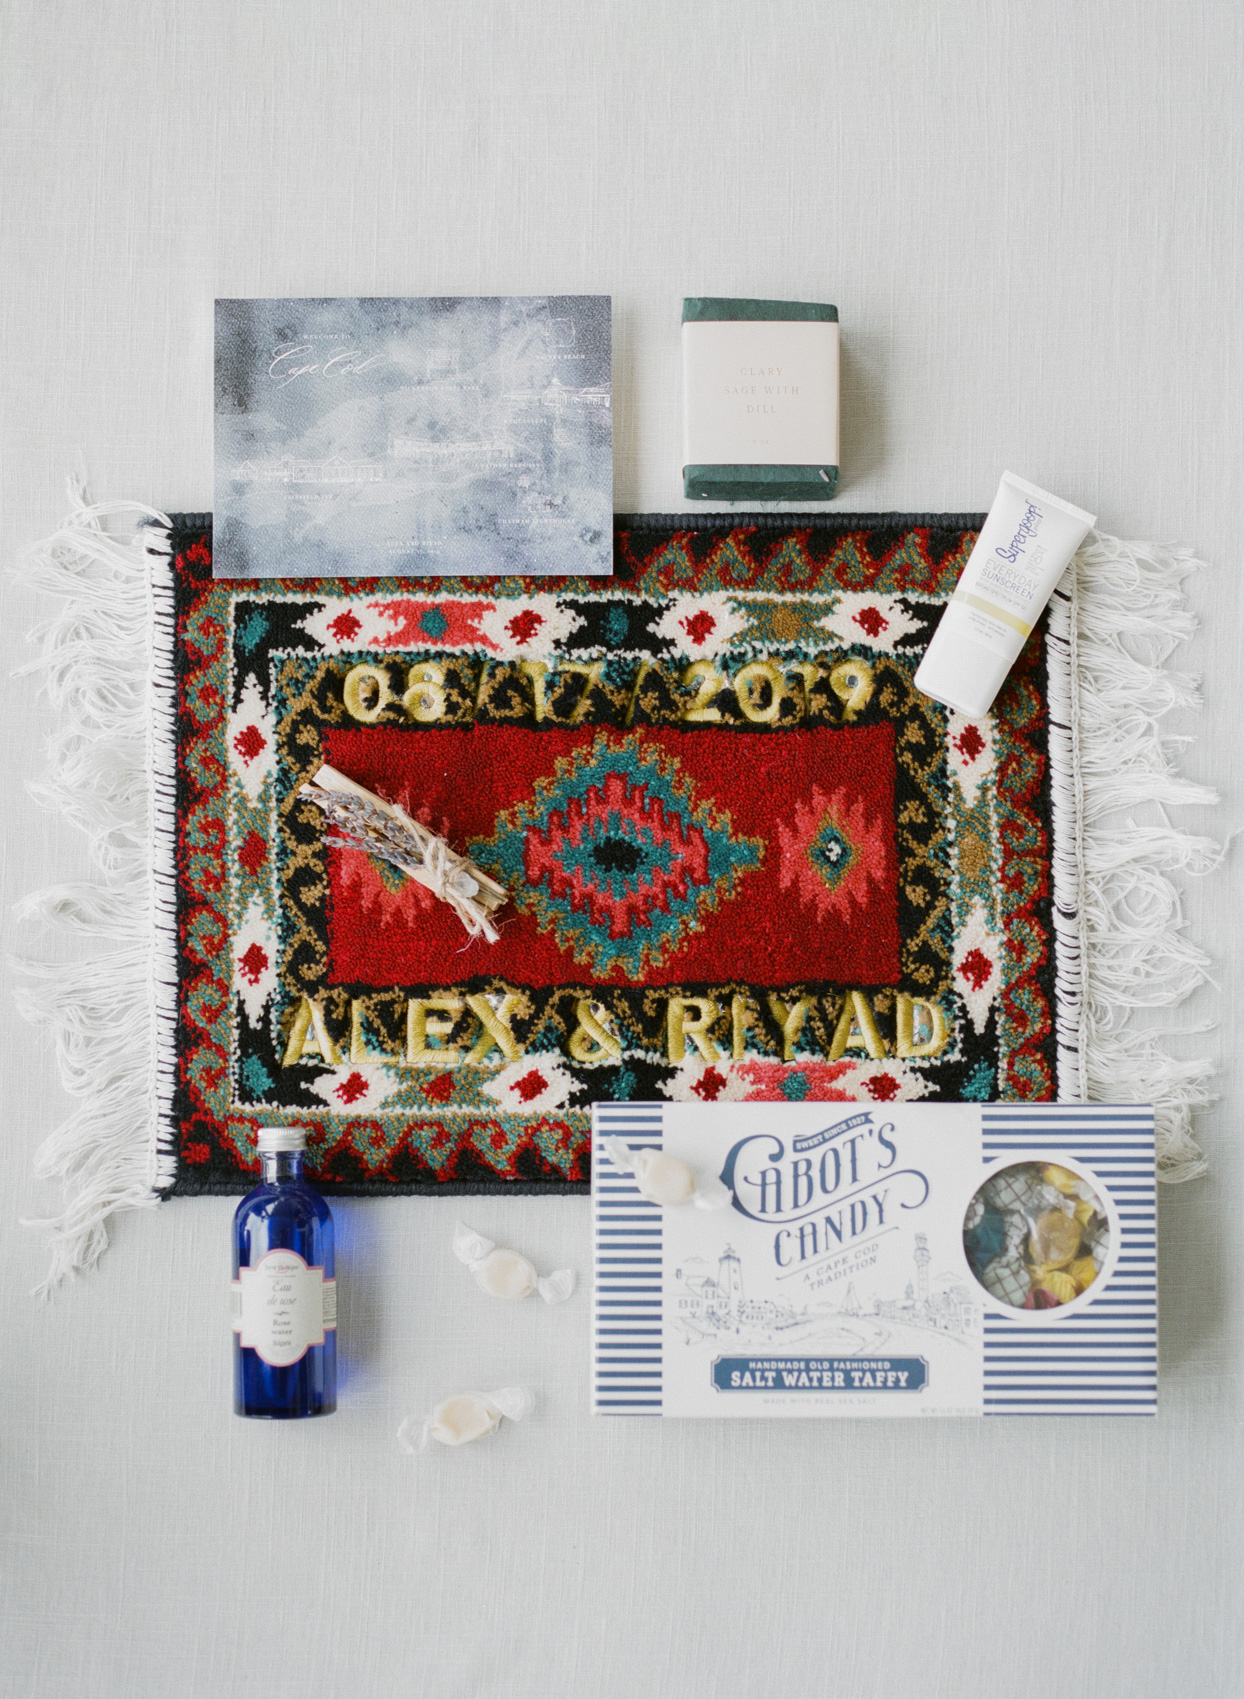 wedding welcome box with taffy, rose water, rug, rug, soap, sunscreen, and map